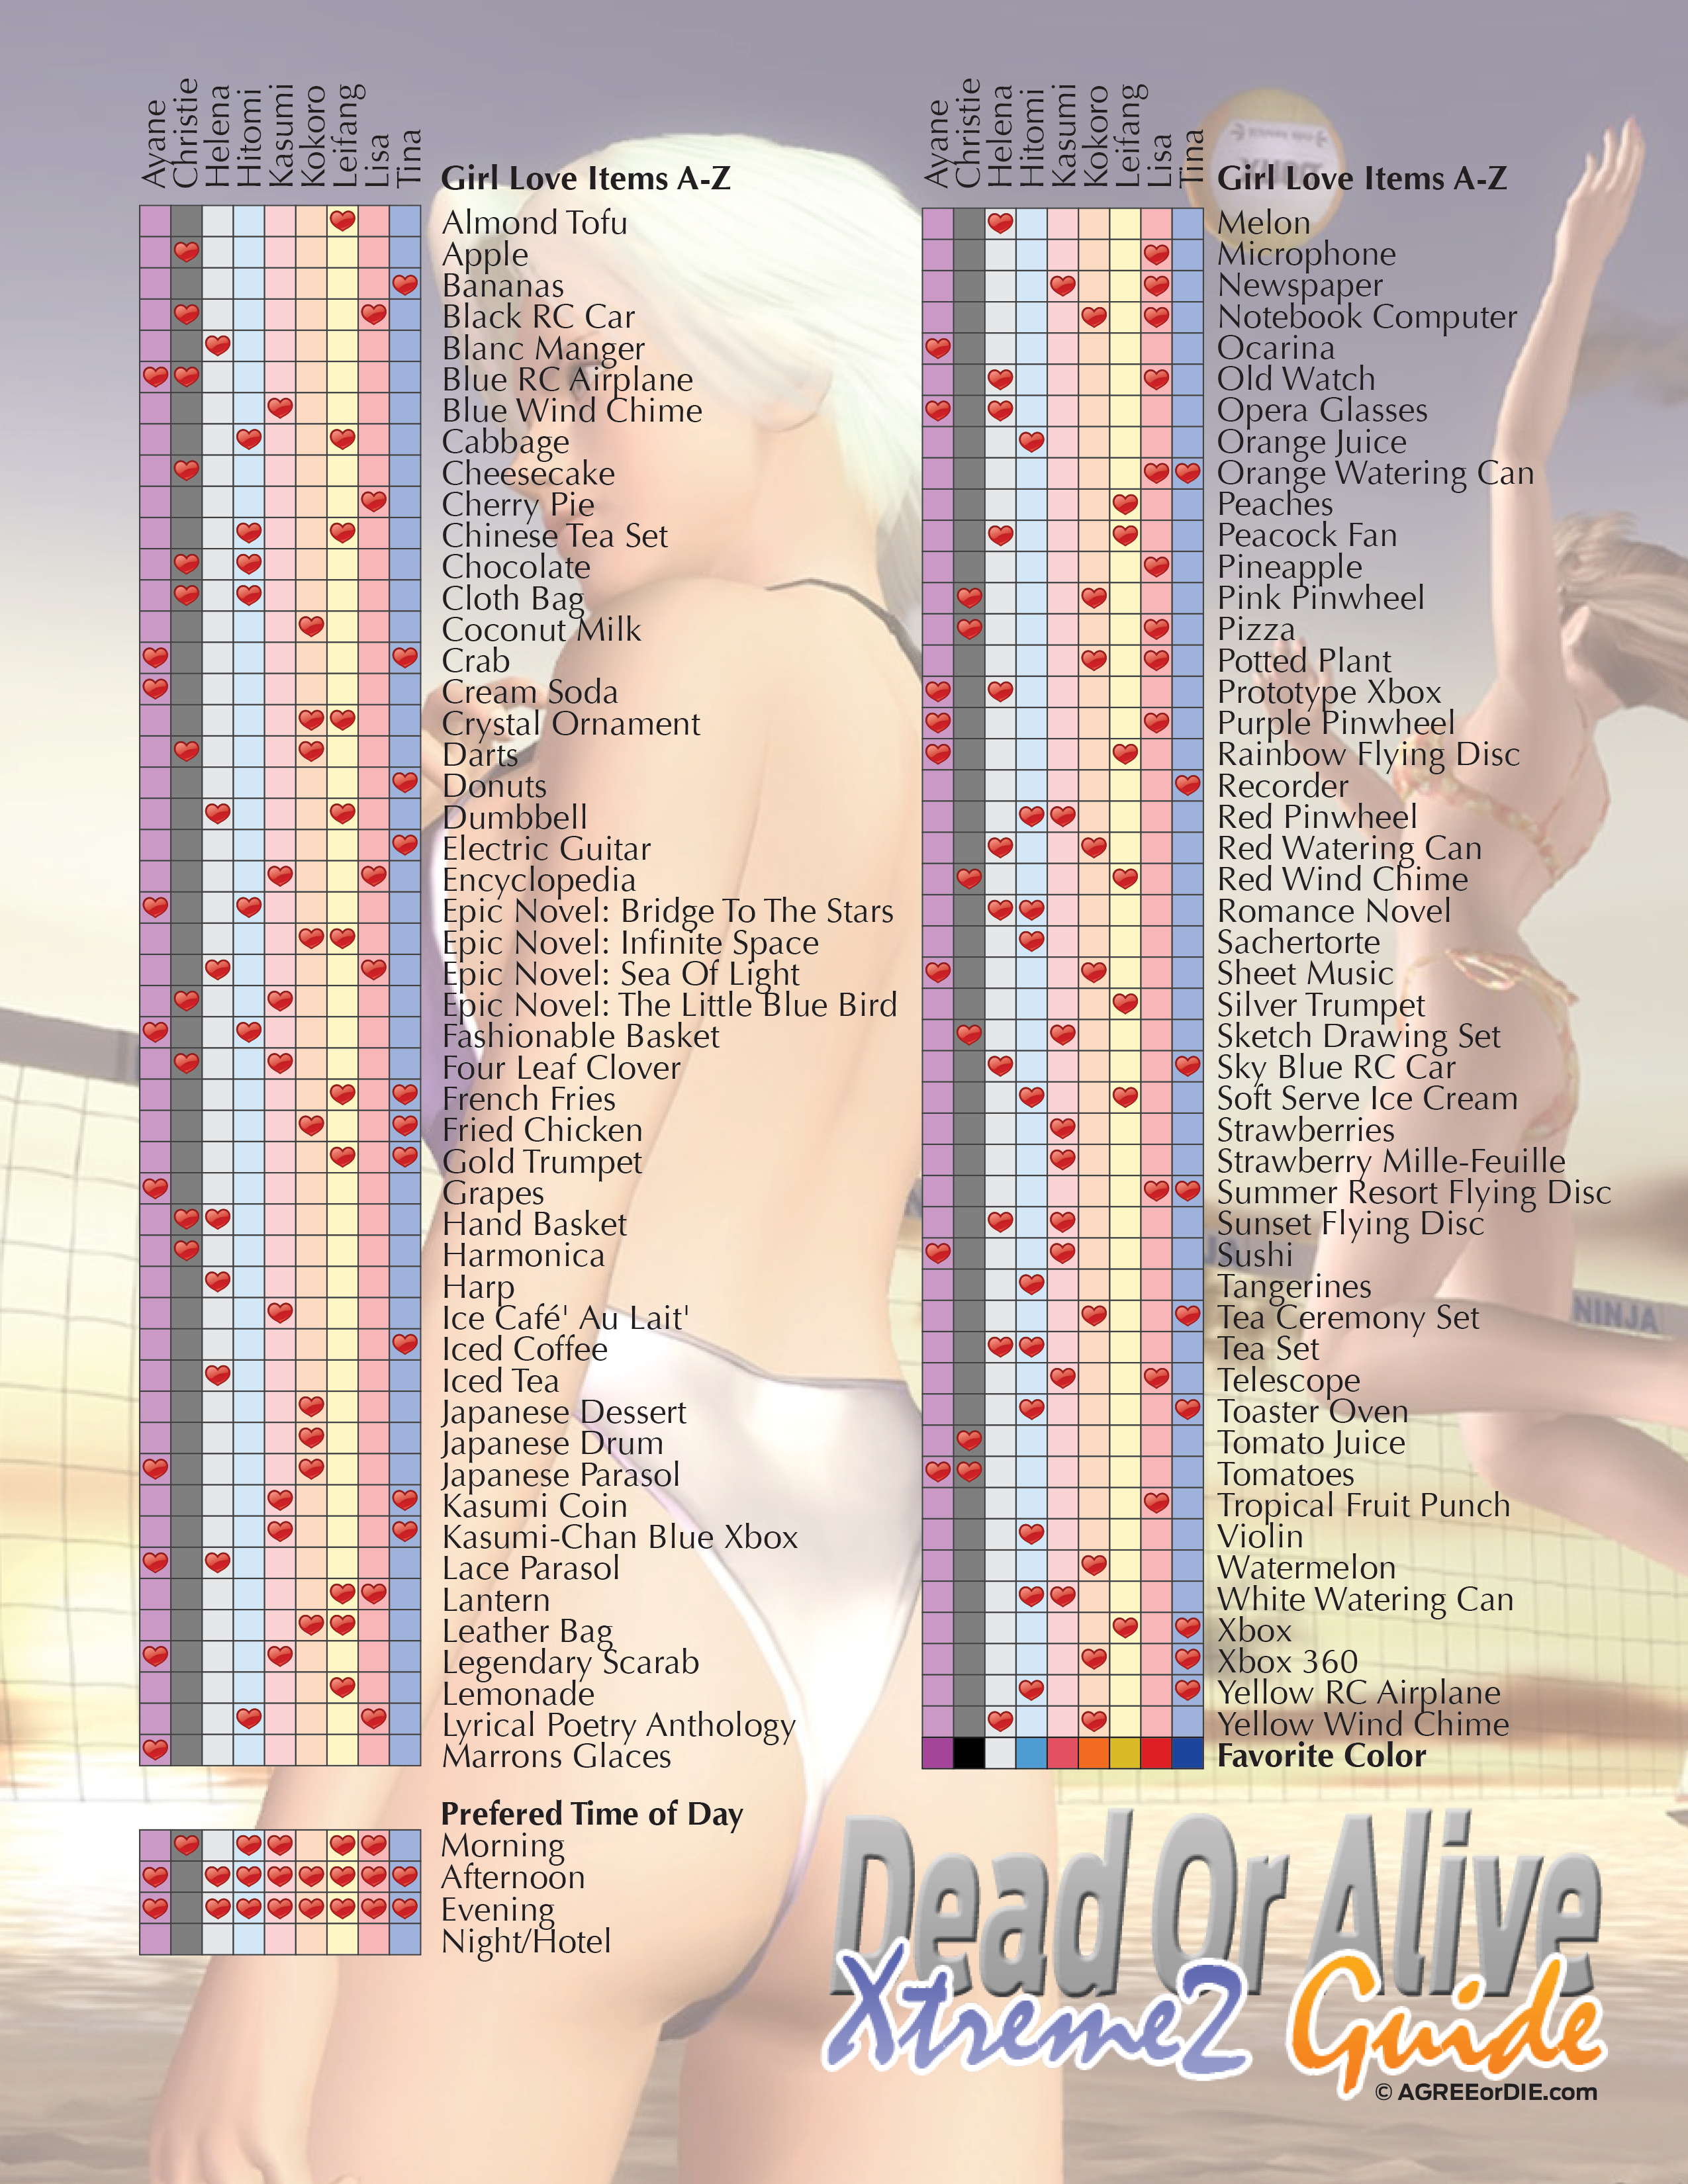 Dead Or Alive Xtreme 2 Girl Gift Guide - AGREEorDIE